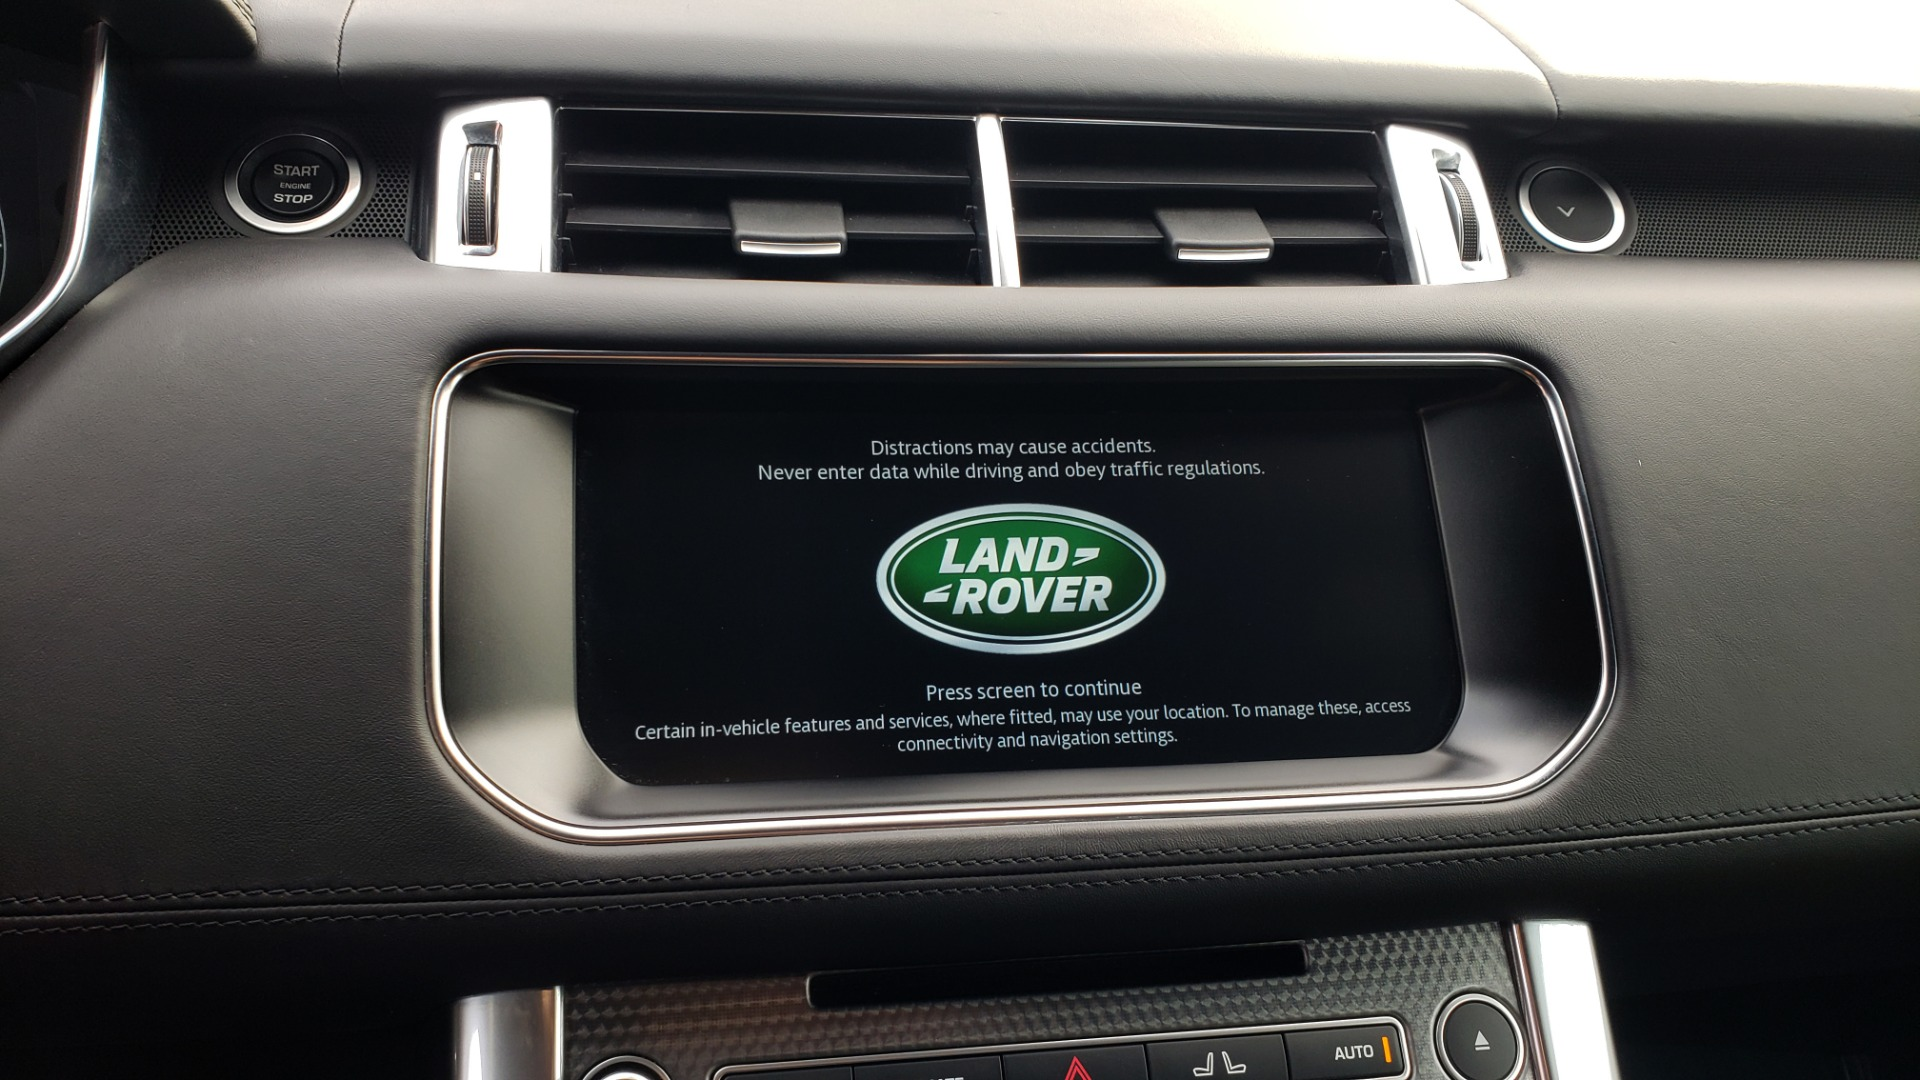 Used 2017 Land Rover RANGE ROVER SPORT HSE DYNAMIC / SC V6 / NAV / MERIDIAN / PANO-ROOF / REARVIEW for sale Sold at Formula Imports in Charlotte NC 28227 49